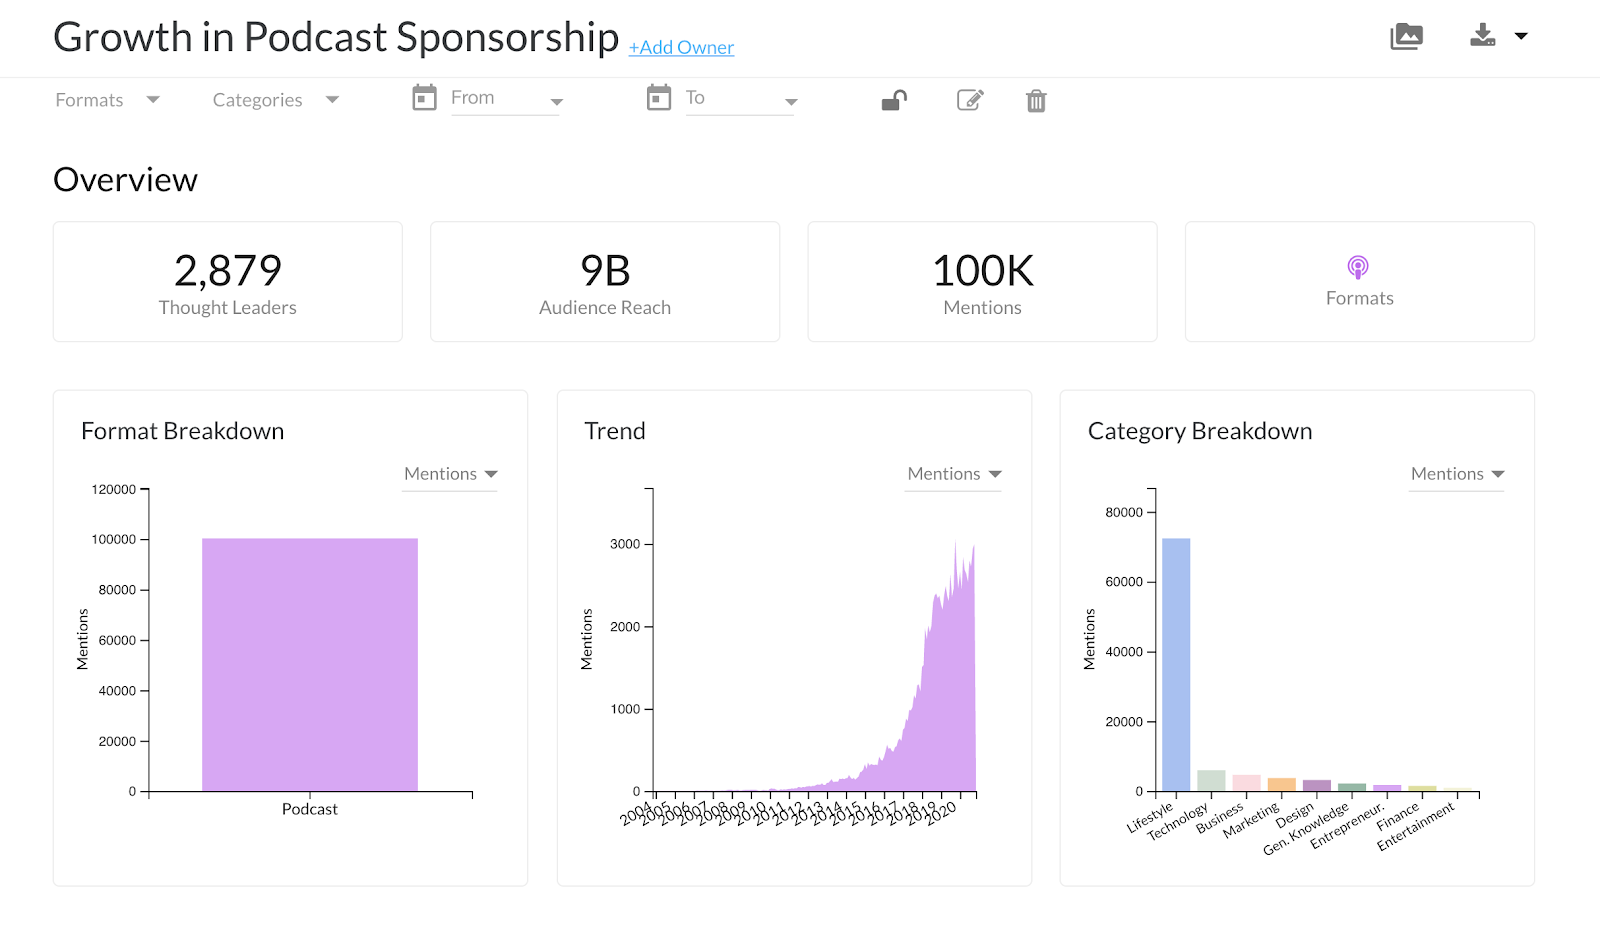 Growth in podcast sponsorship